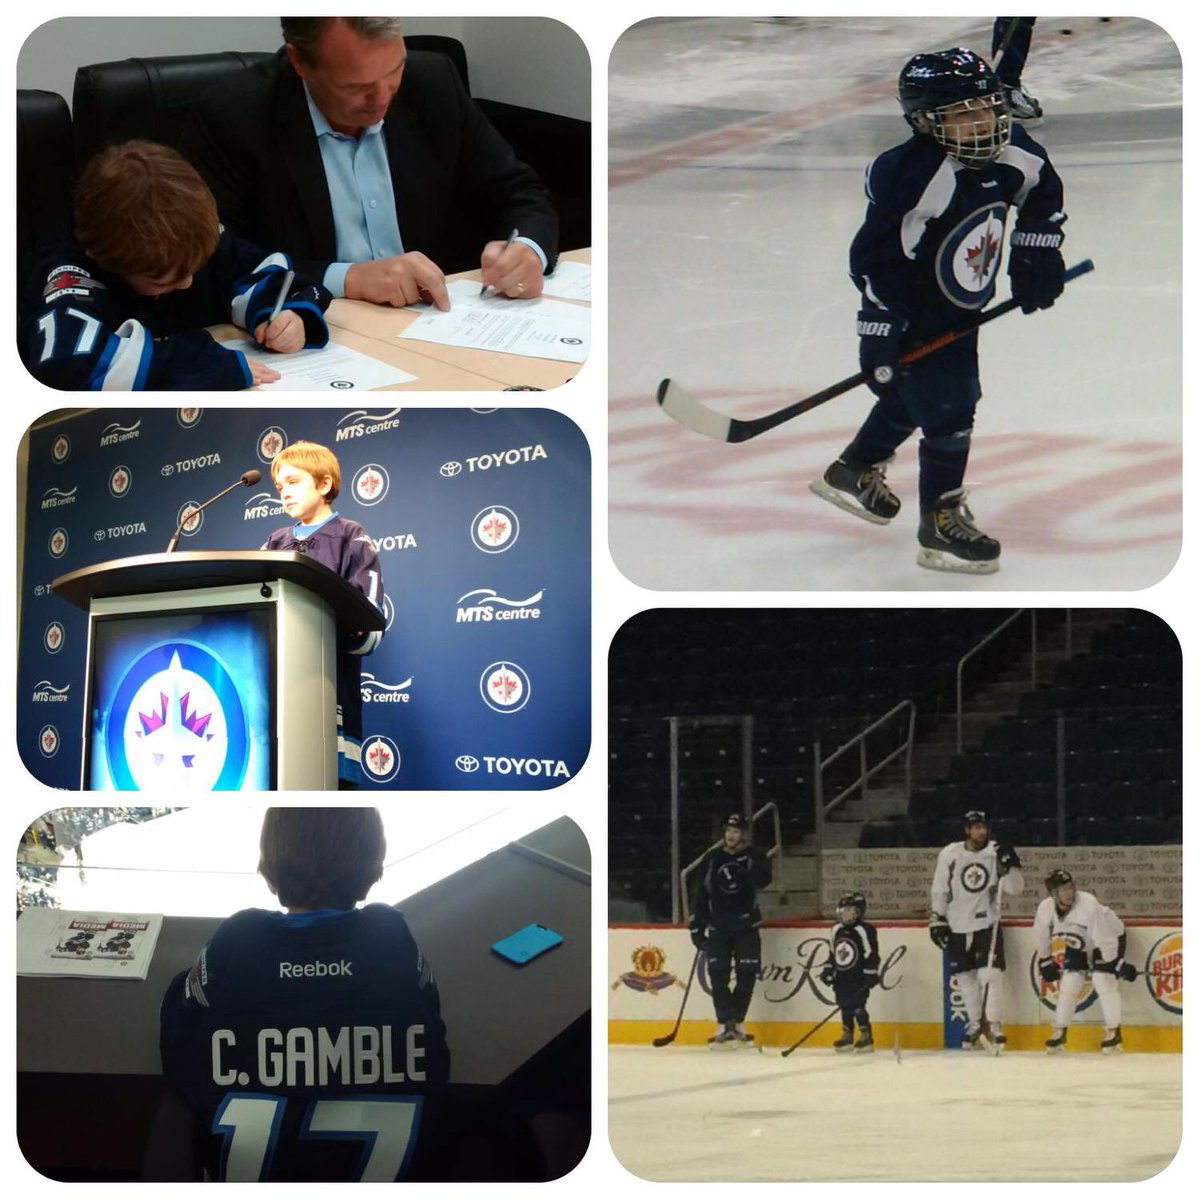 Incredible wish-in-progress in #Winnipeg as @MakeAWishSA wish kid Connolly gets his wish to be a @NHLJets player! https://t.co/jgtI7Ft2S8